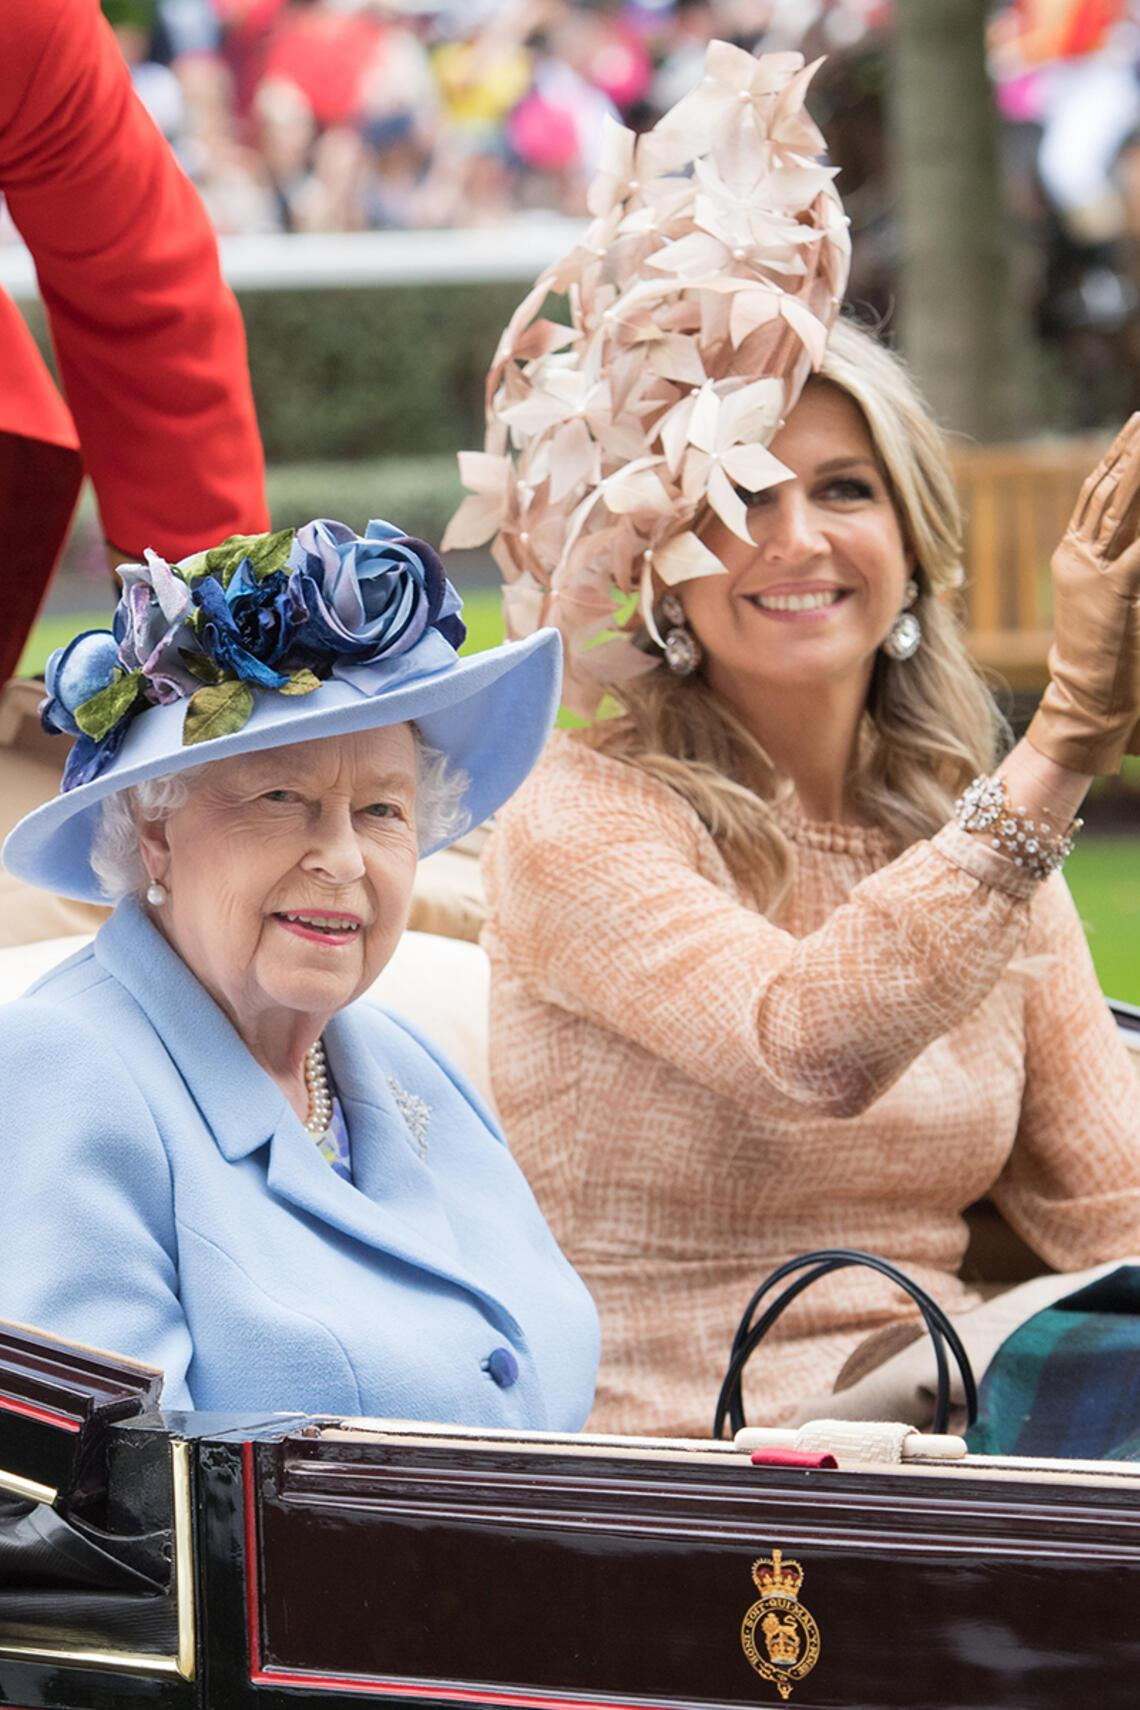 ASCOT, ENGLAND - JUNE 18: Queen Elizabeth II and Queen Maxima of the Netherlands arrive by carriage on day one of Royal Ascot at Ascot Racecourse on June 18, 2019 in Ascot, England. (Photo by Samir Hussein/WireImage)